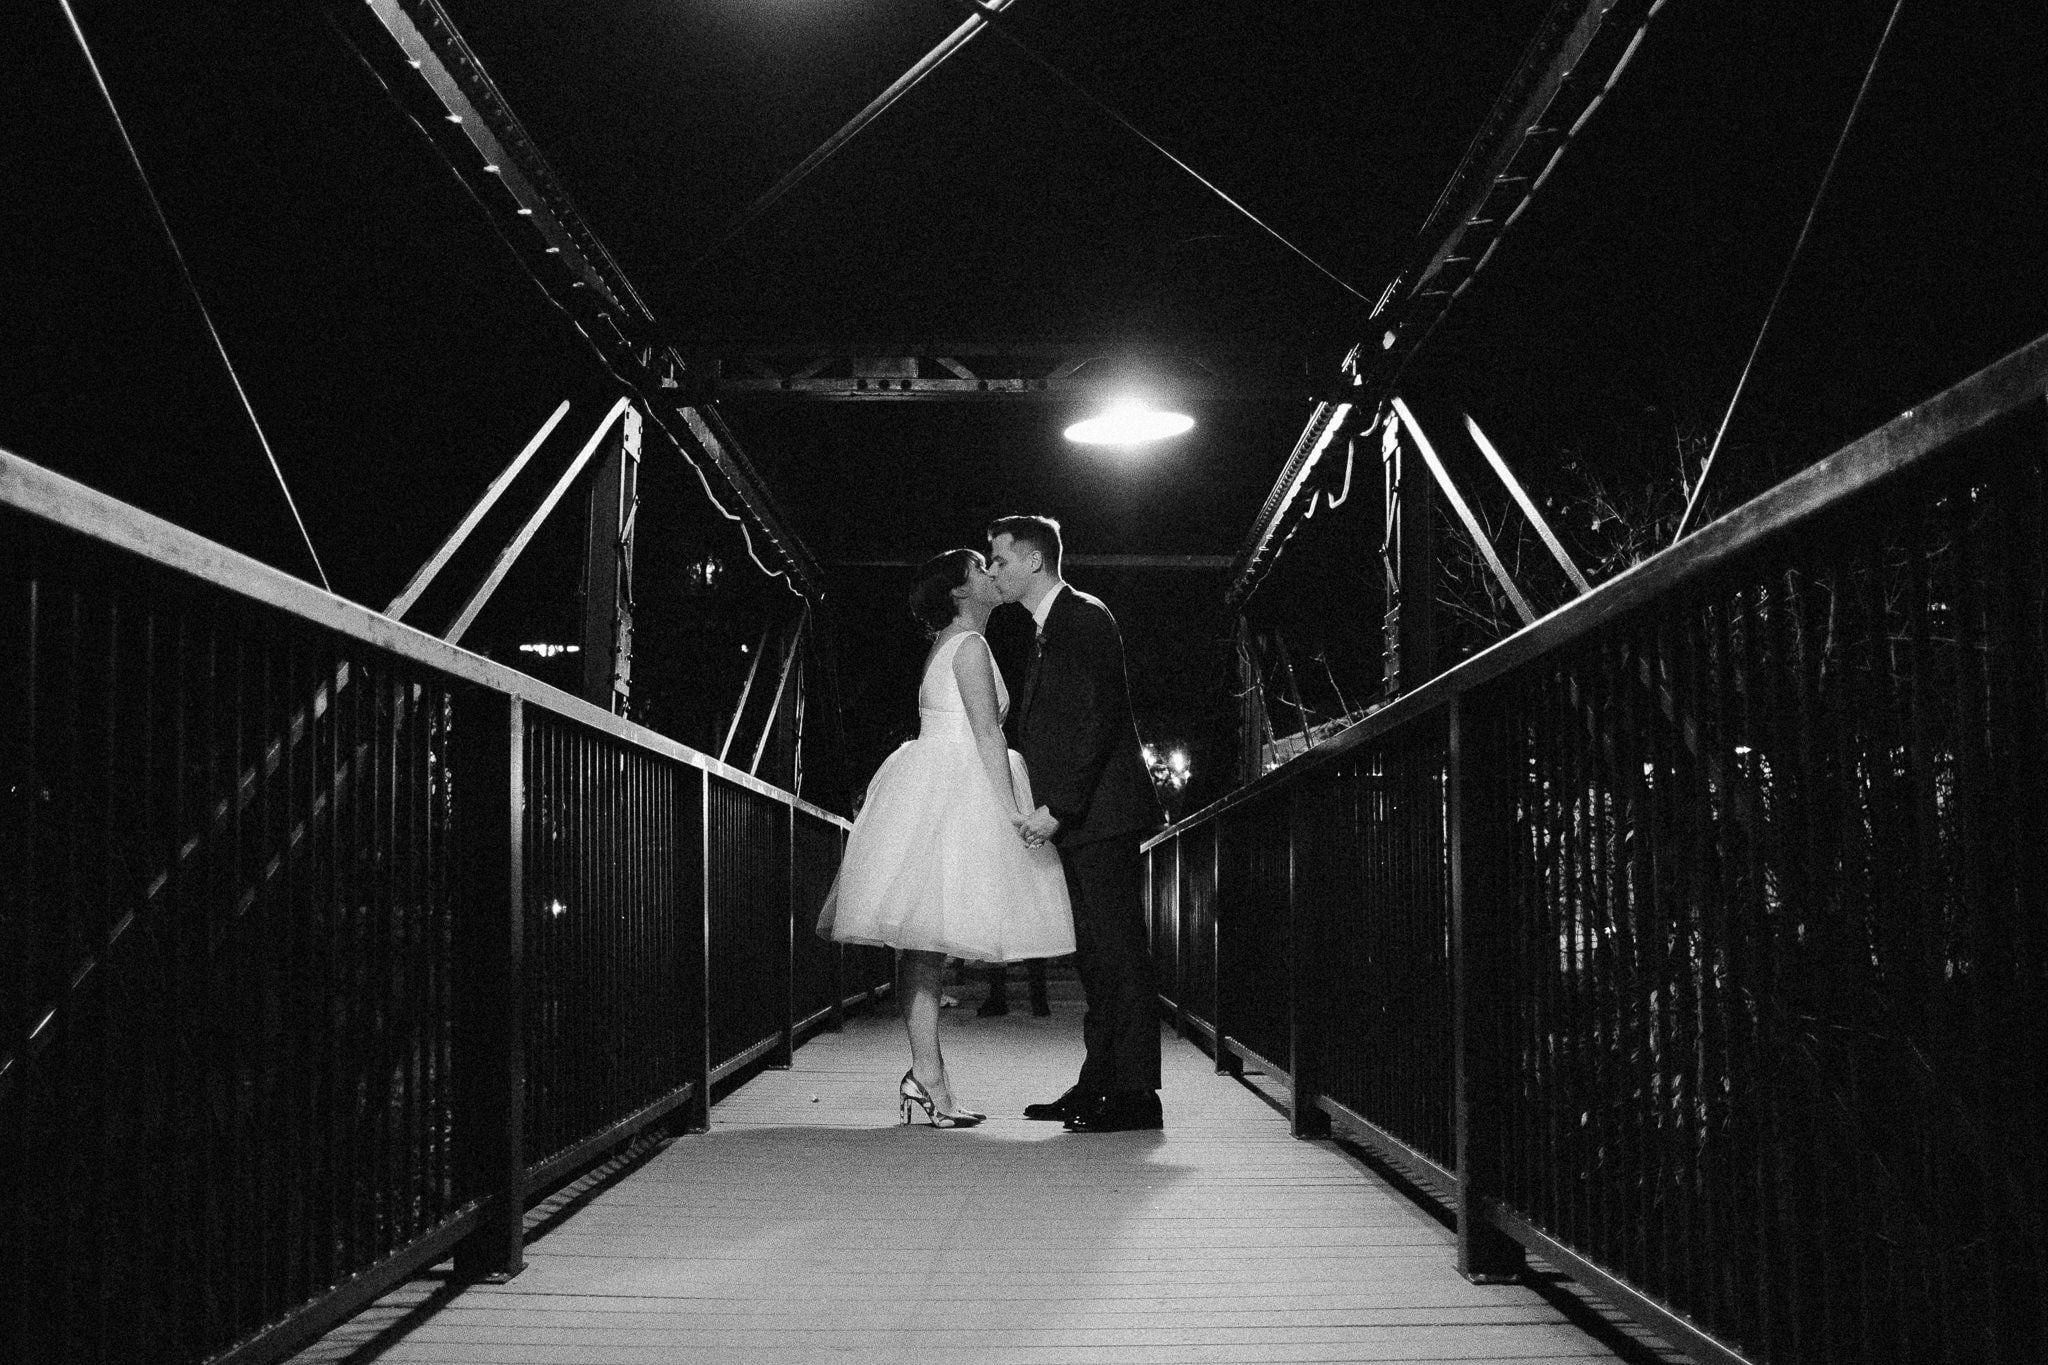 Silverthorne Pavilion wedding photography, Colorado wedding photographer, bride and groom streetlight night time portrait